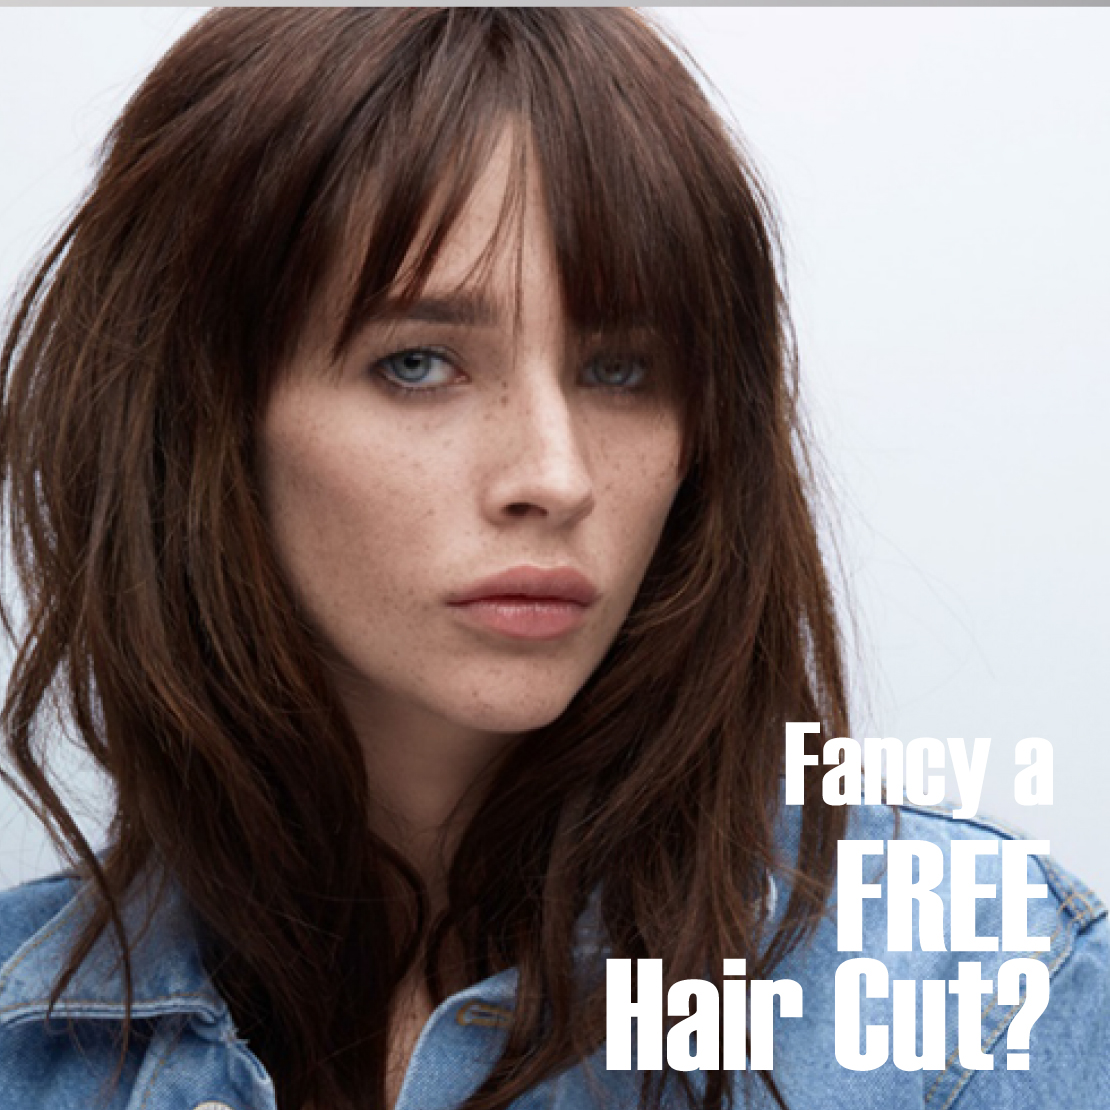 Get a FREE Haircut in January